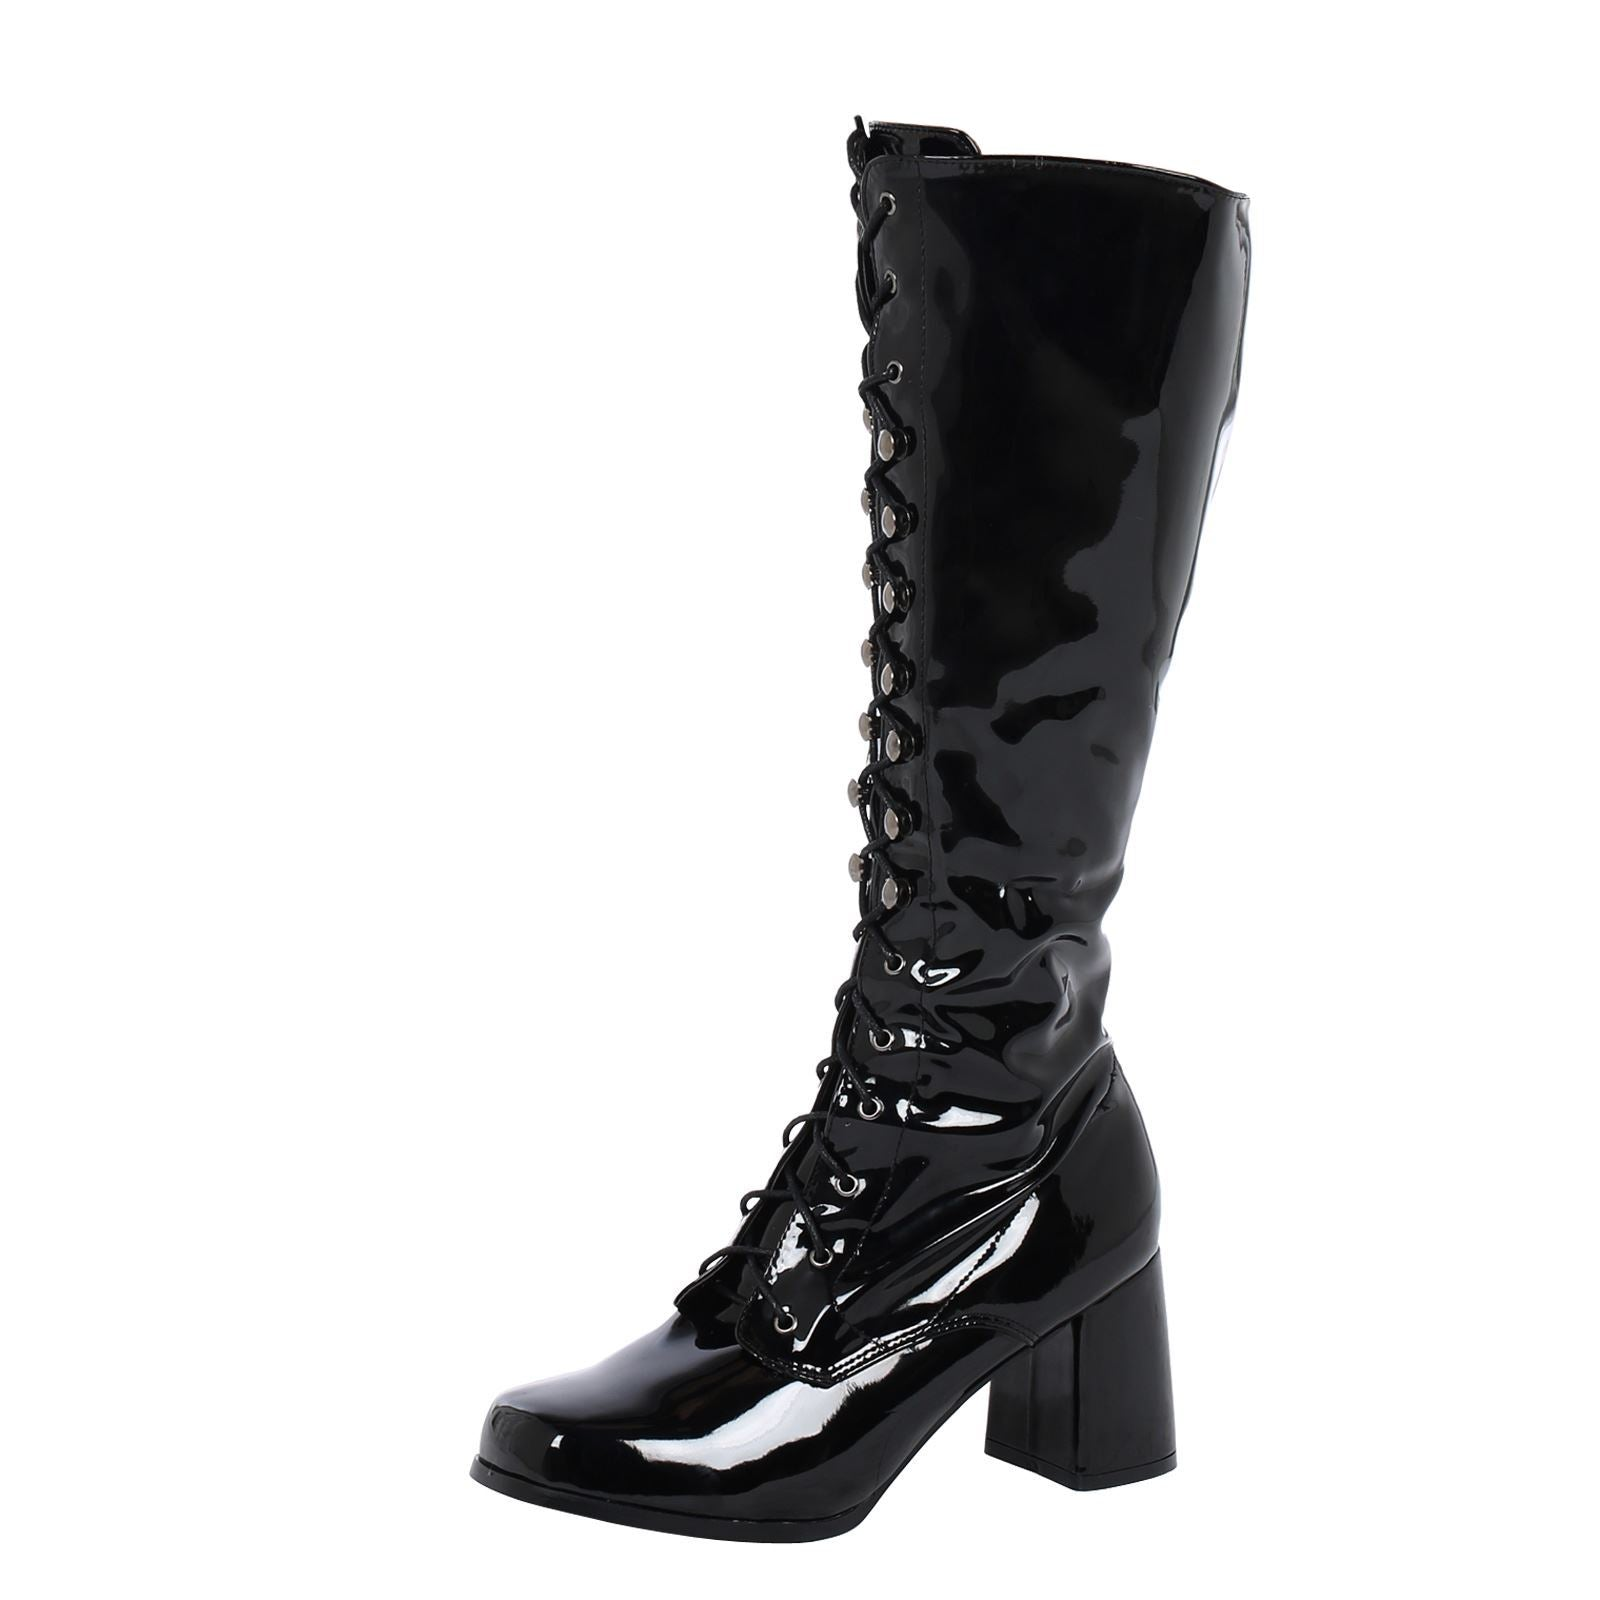 Gretchen Lace Up Knee High Boots in Black Patent